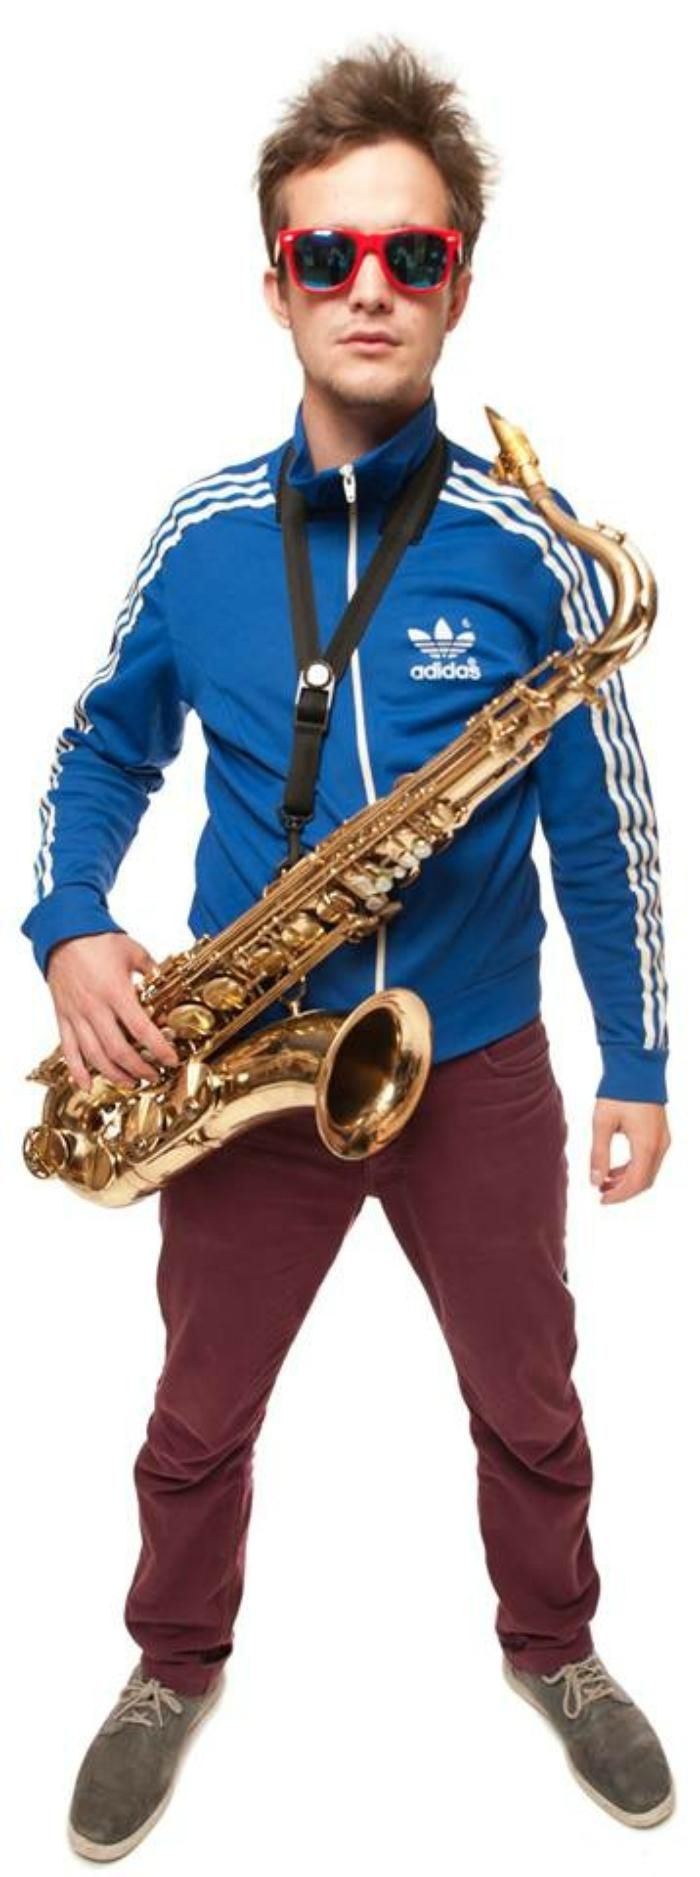 6. The joy of sax